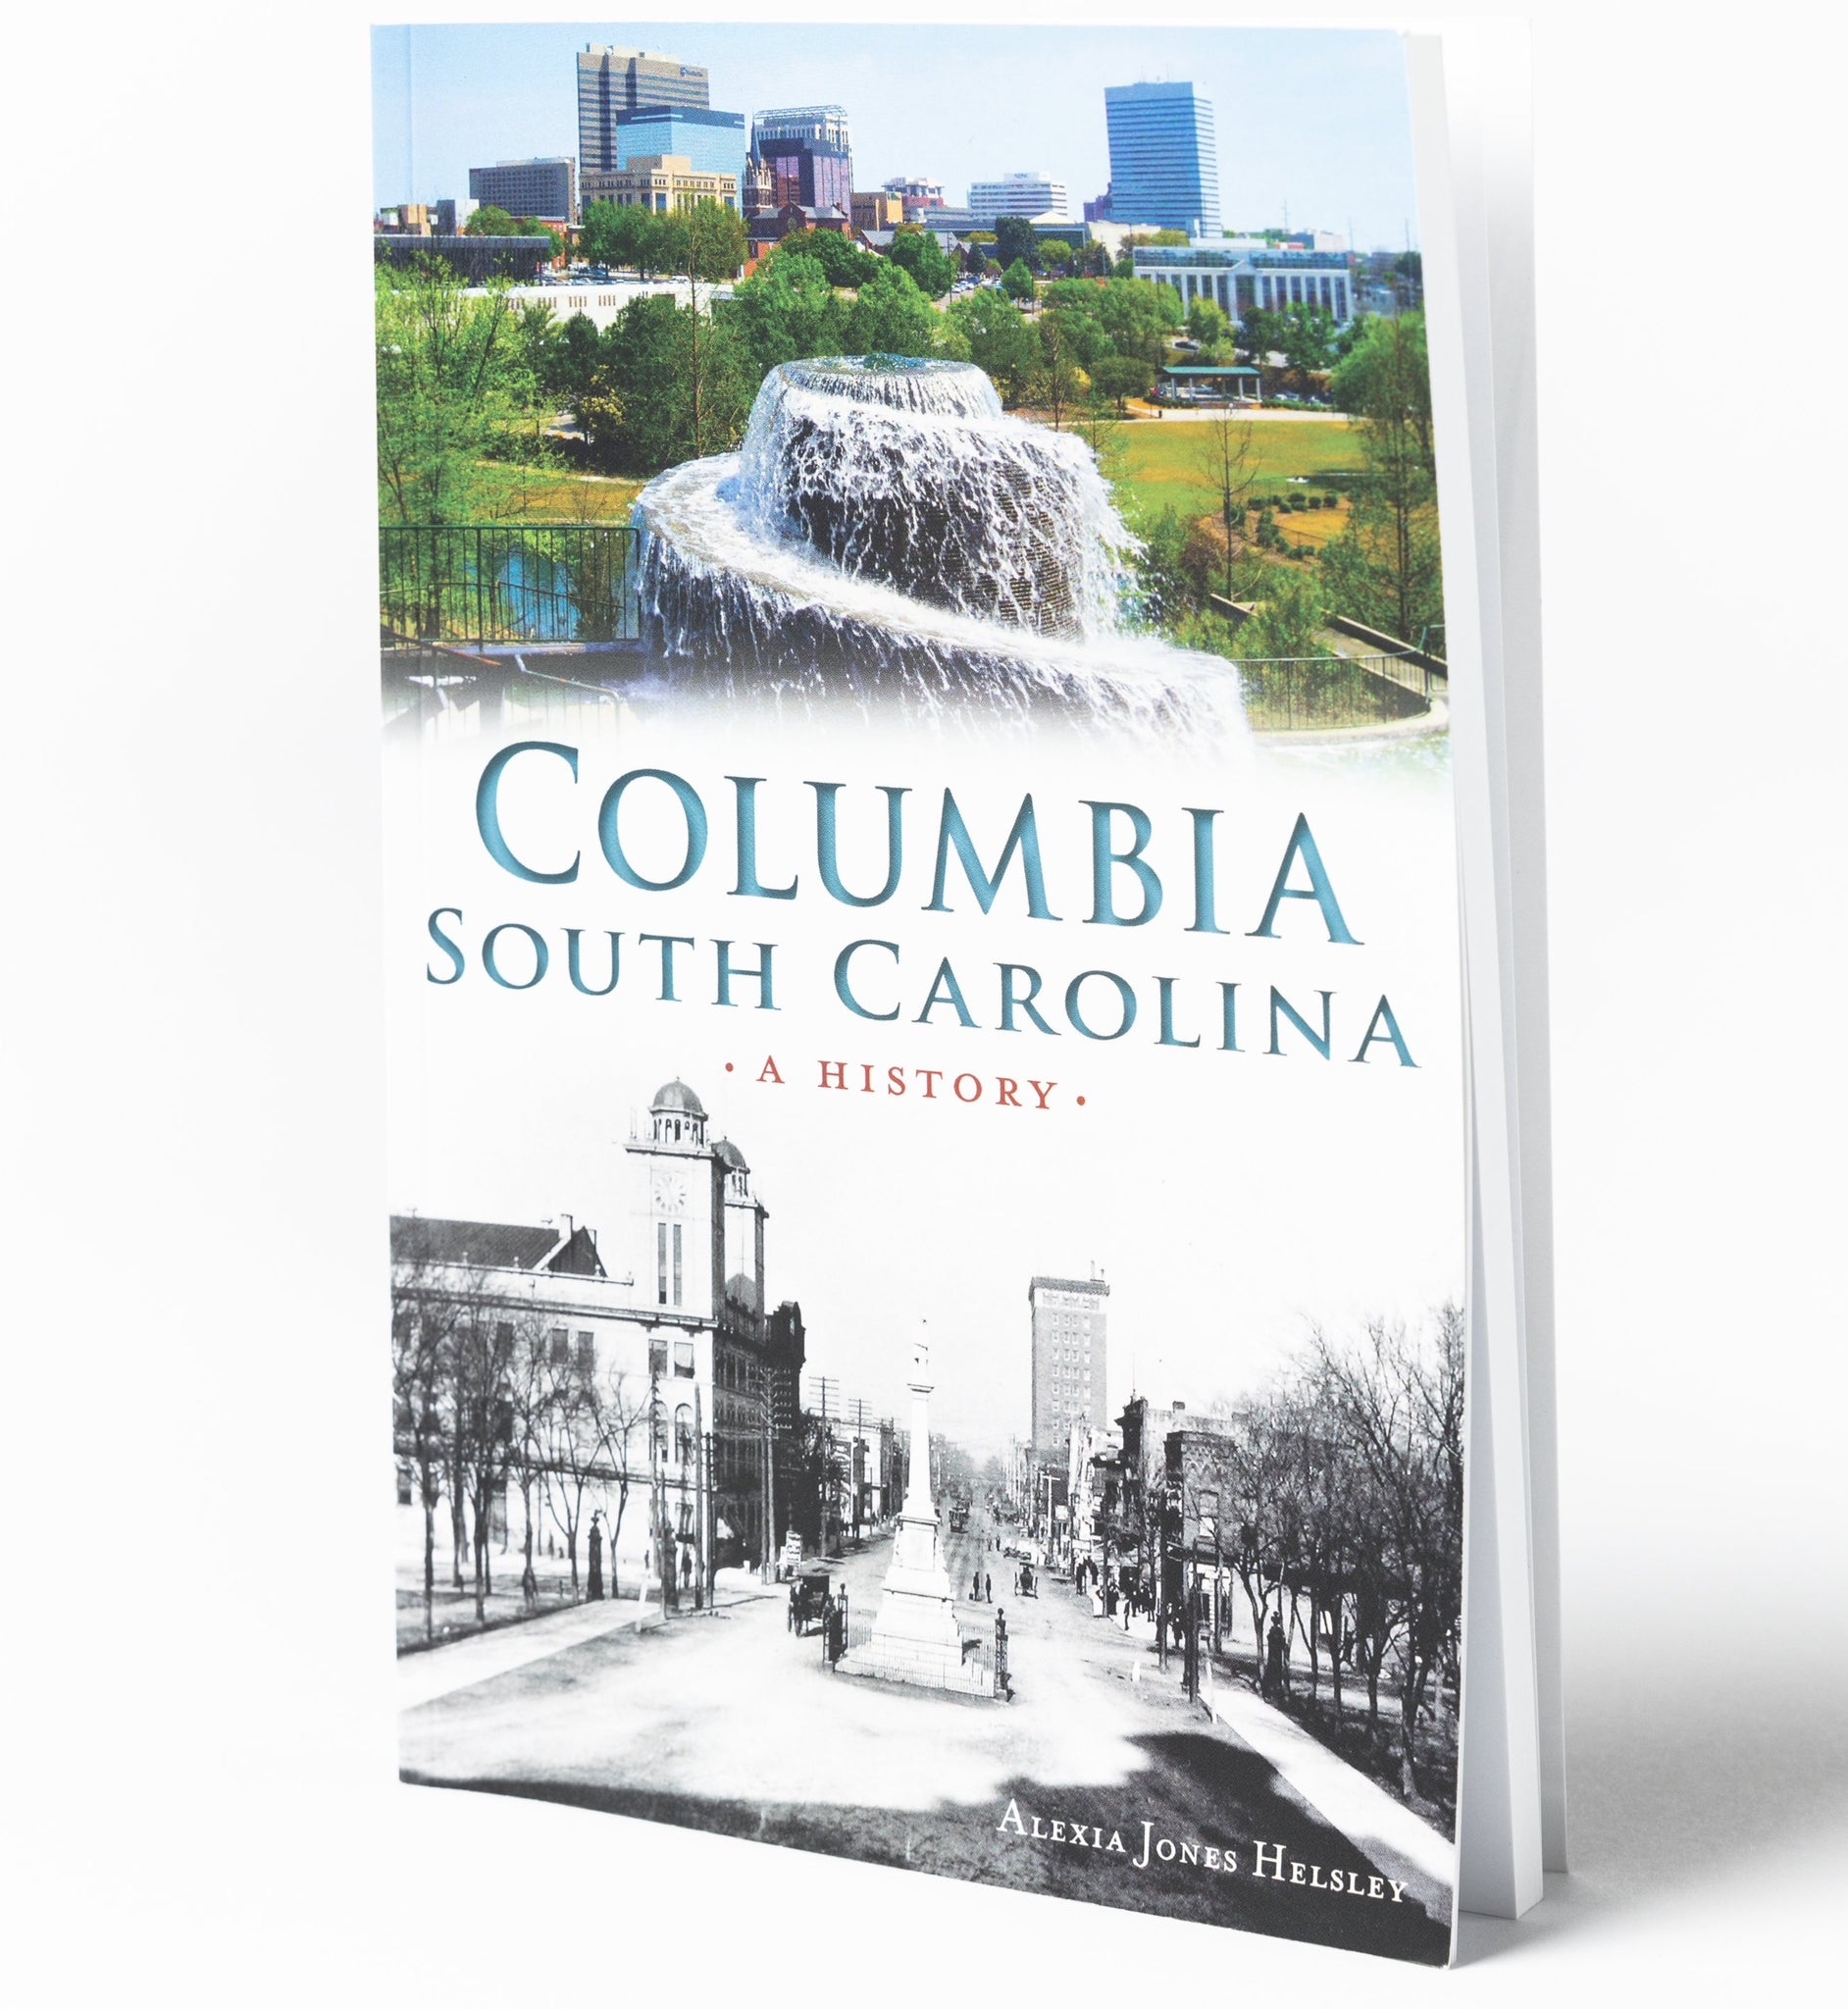 Columbia, South Carolina - A History